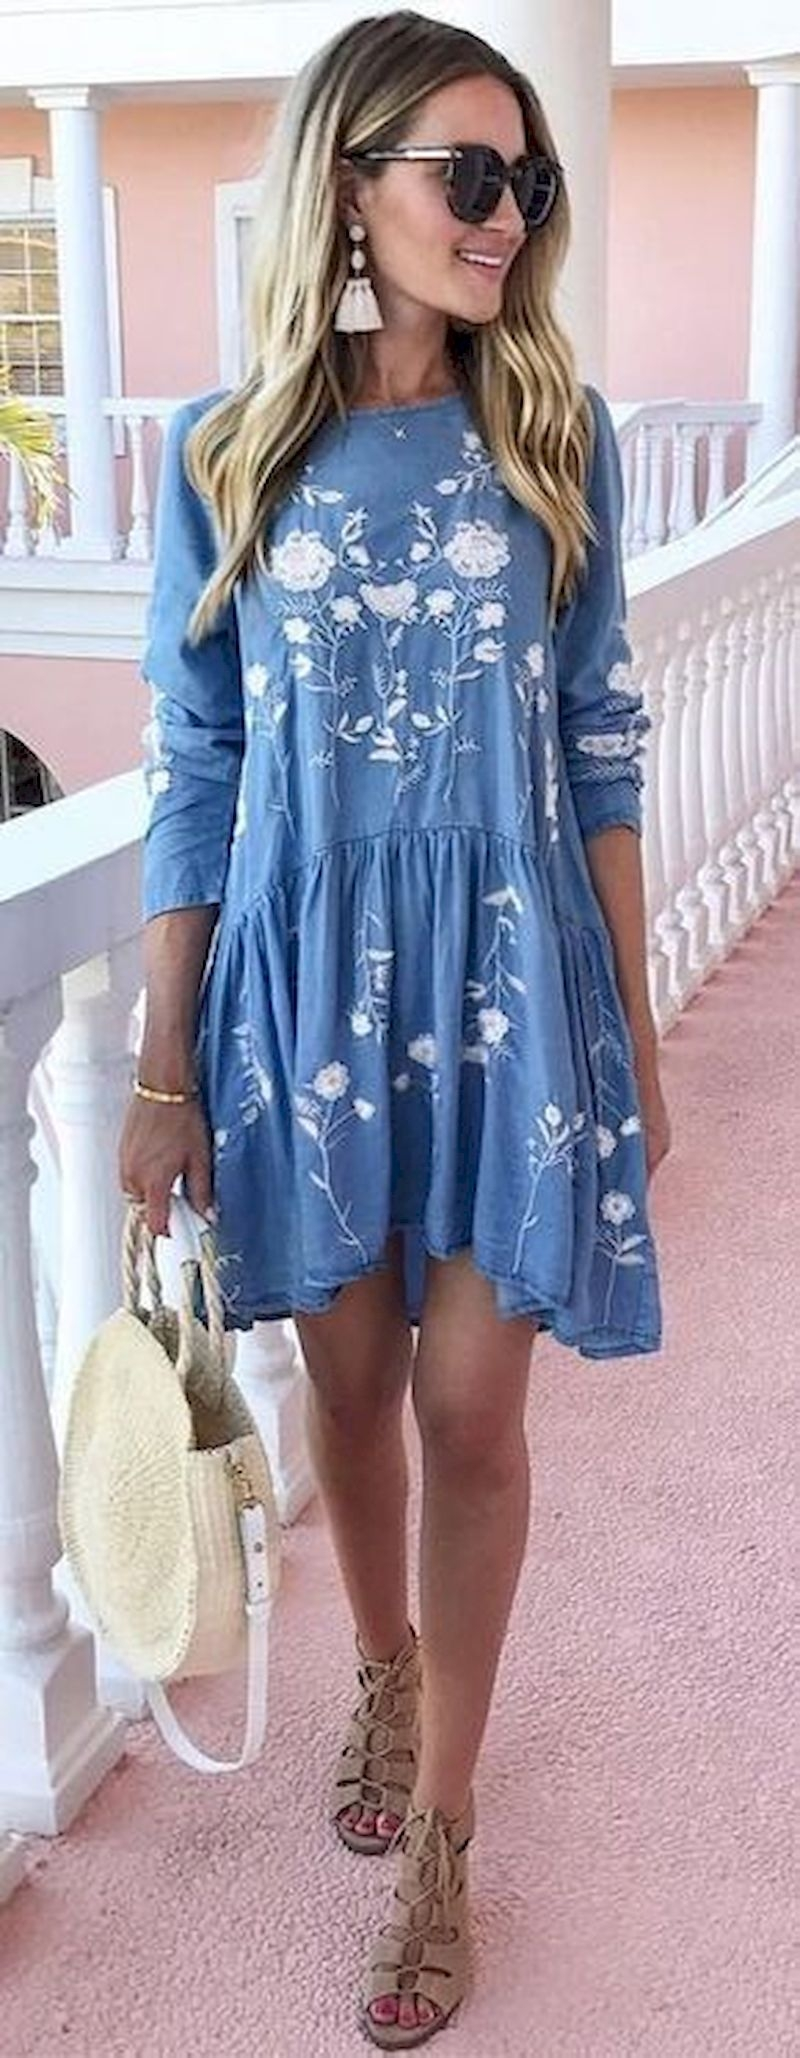 Spring outfit inspiration with blue floral dress